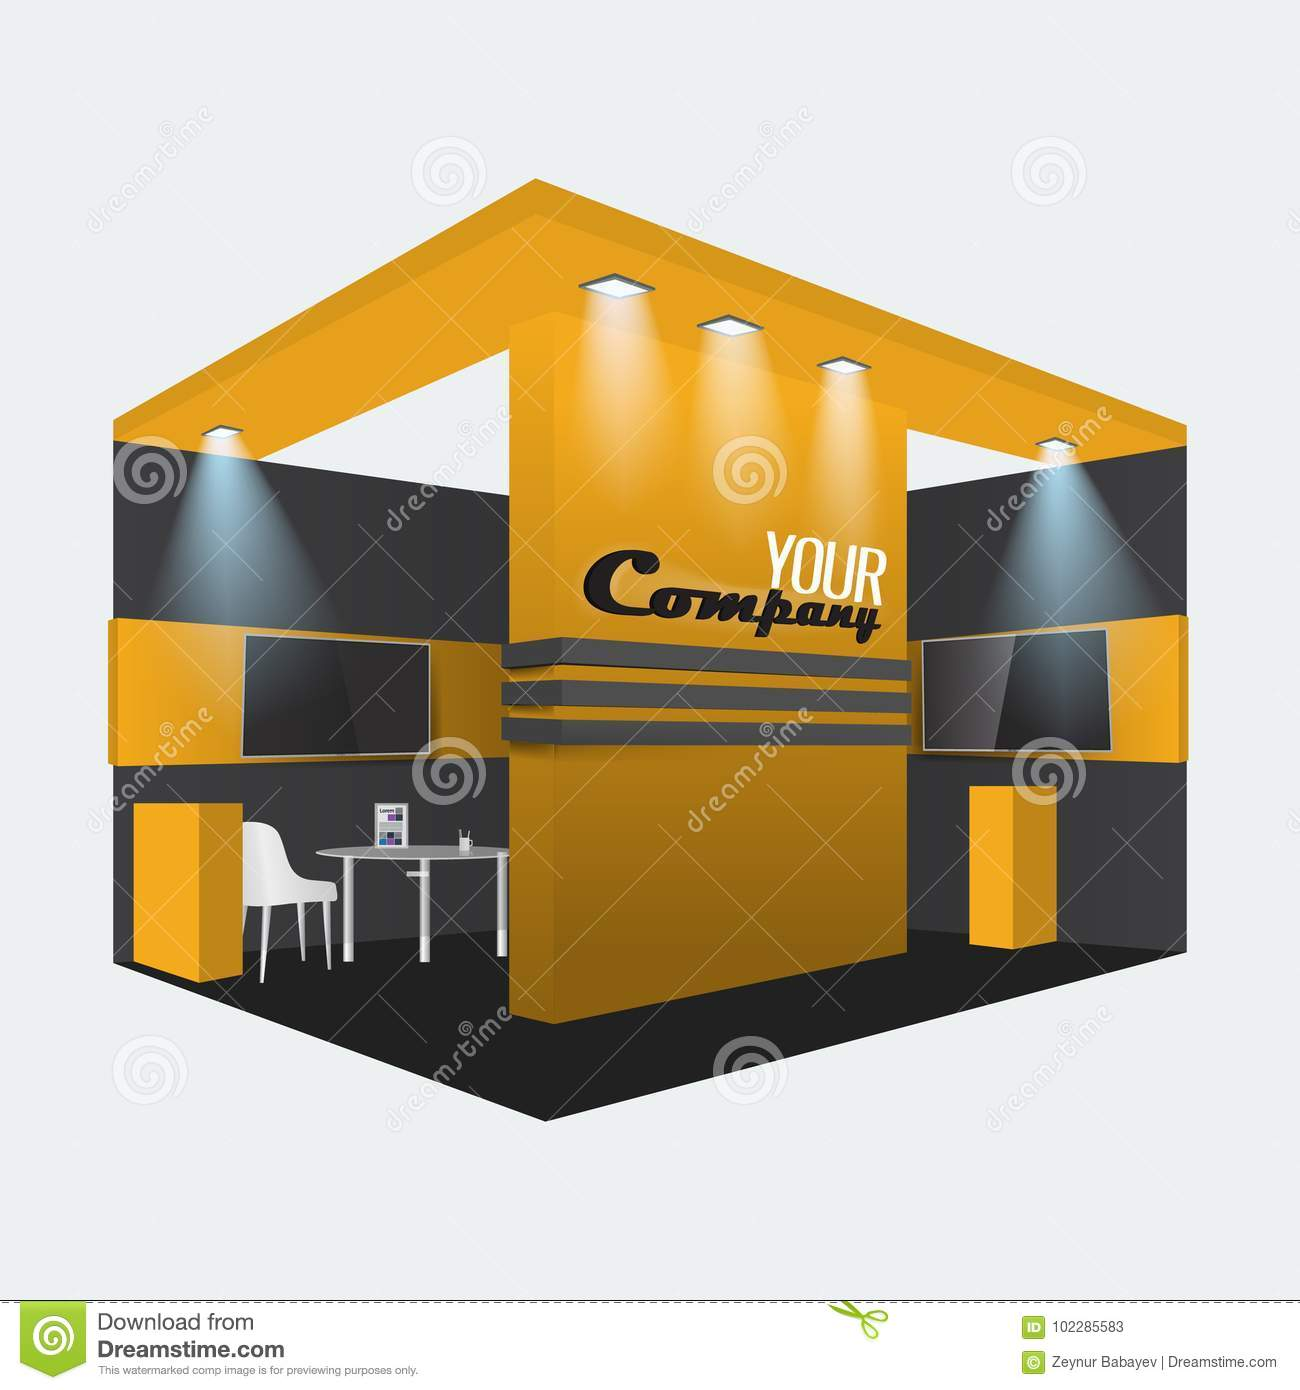 Exhibition Booth Mockup Free Download : Exhibition stand display trade booth mockup design orange and